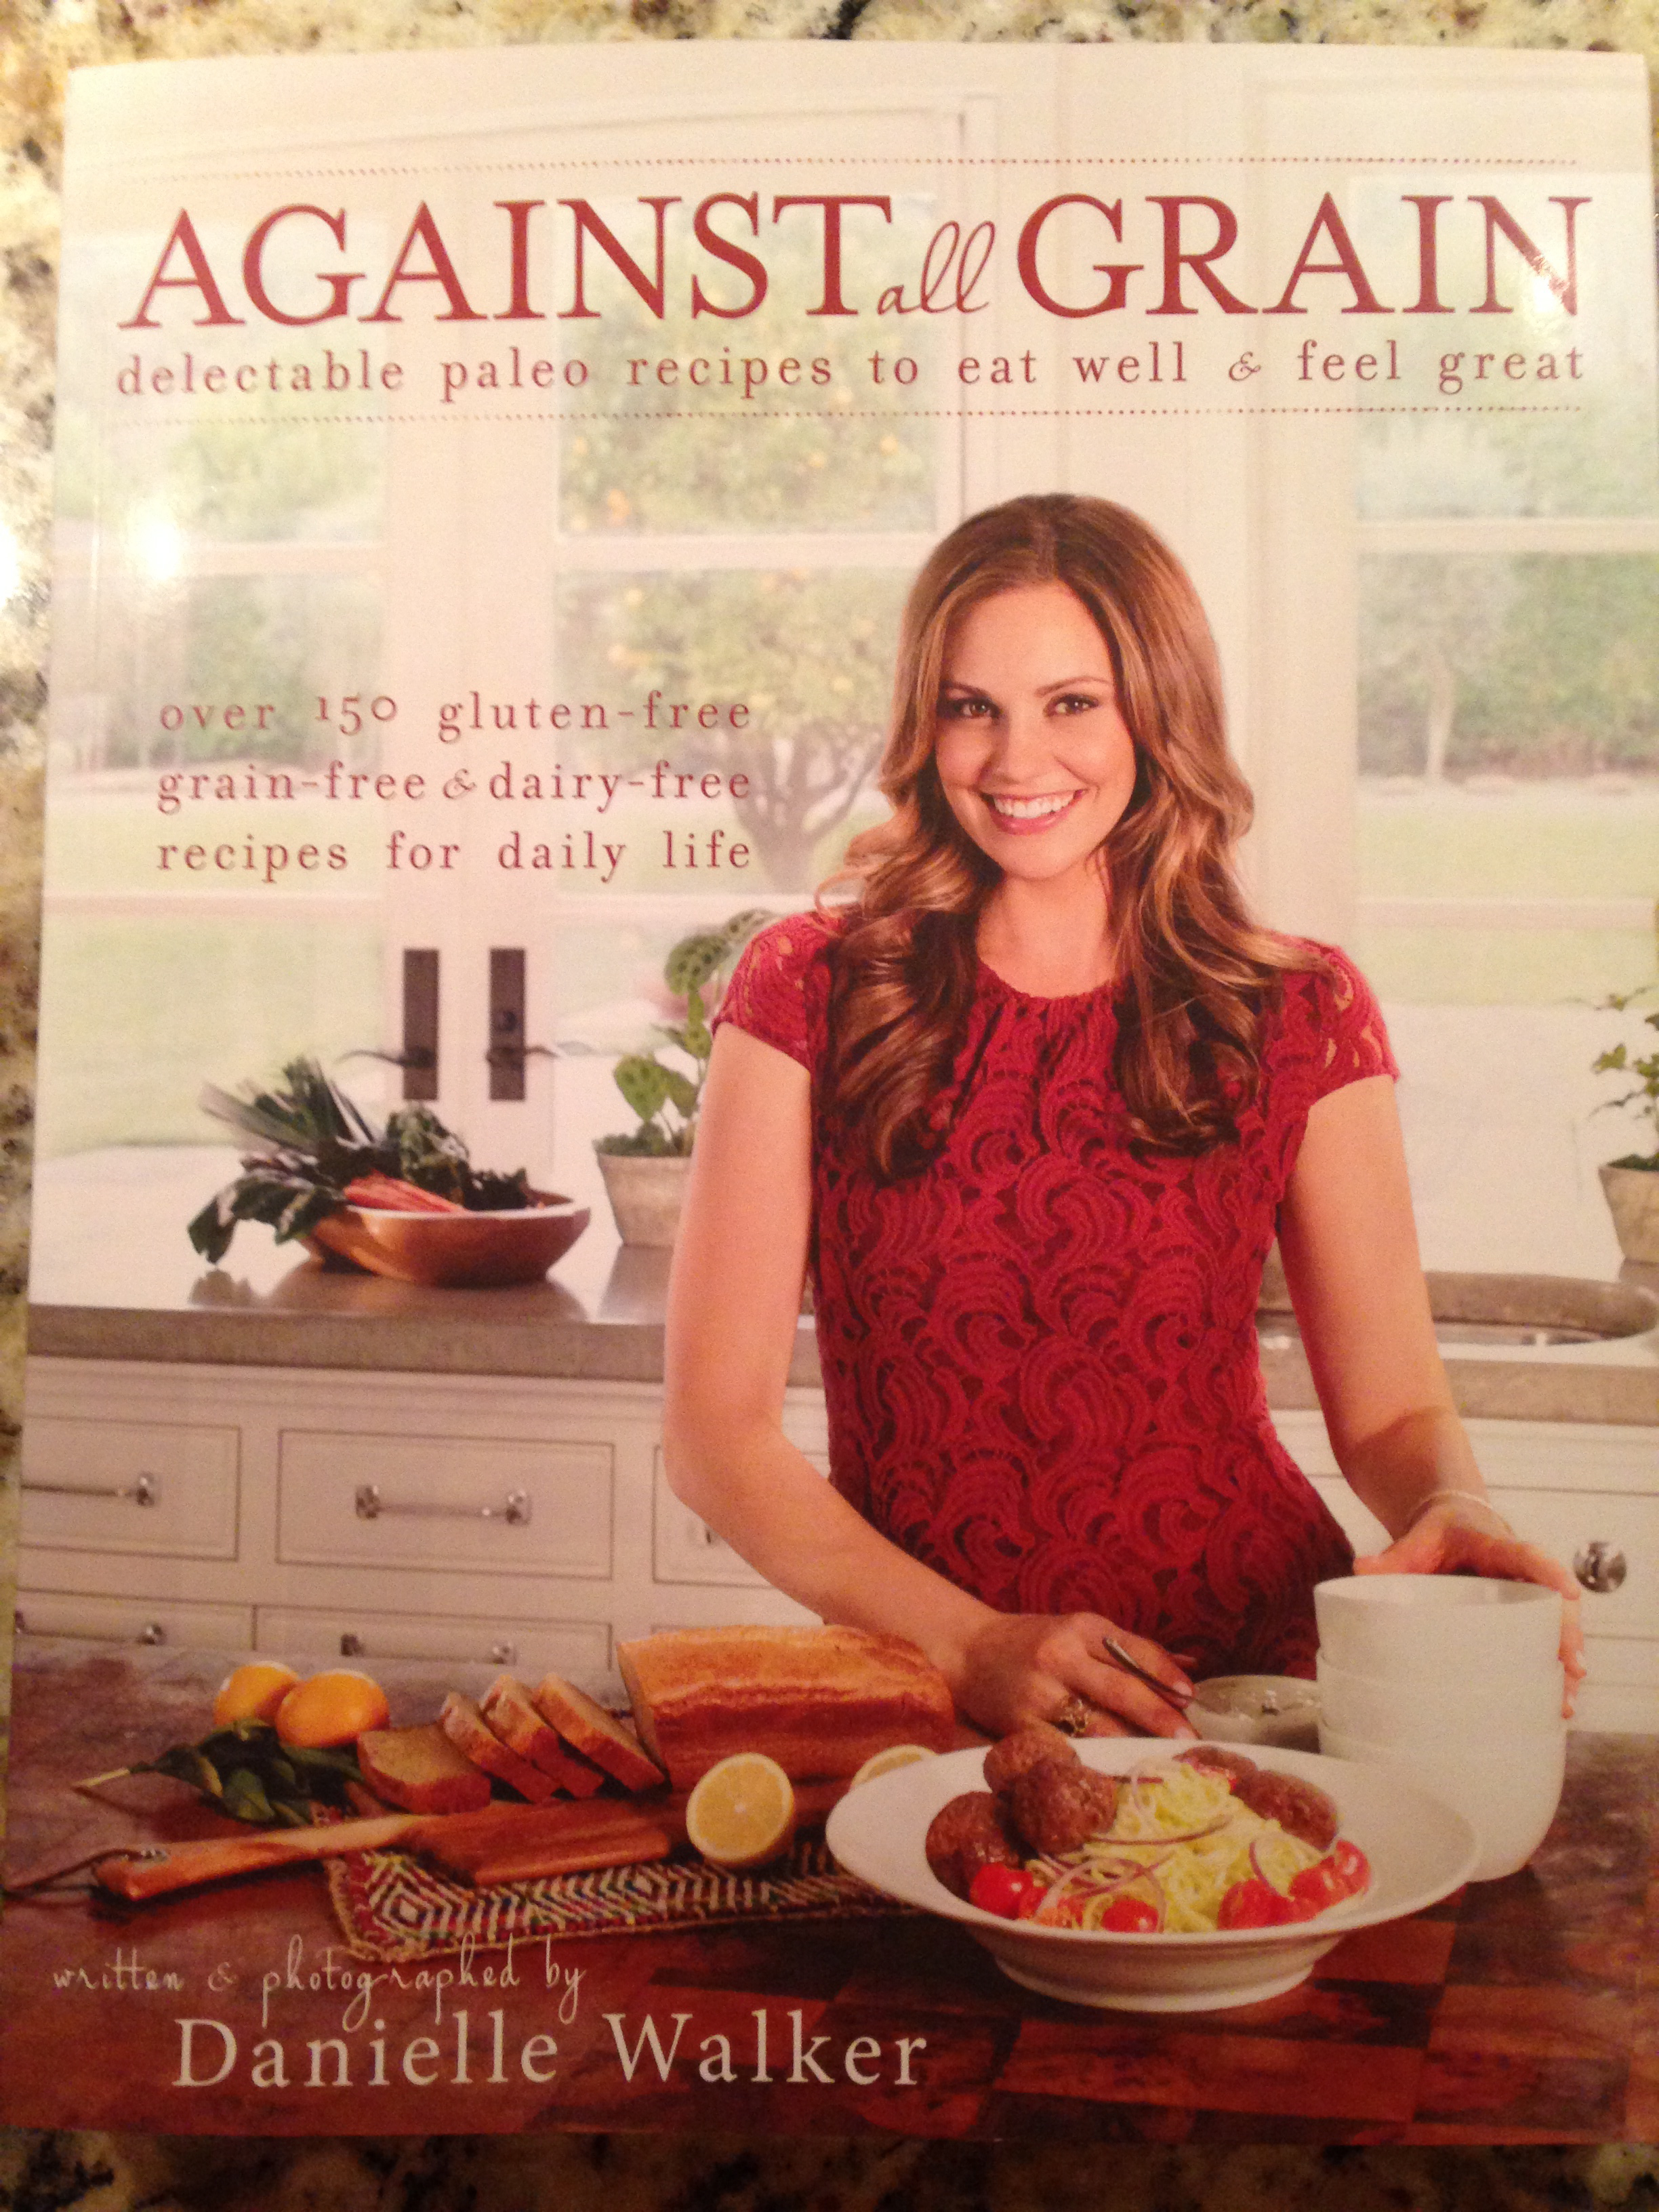 Paleo Küche Danielle Walker 20 Fun Gift Ideas For The Real Food Foodie 39s And Health